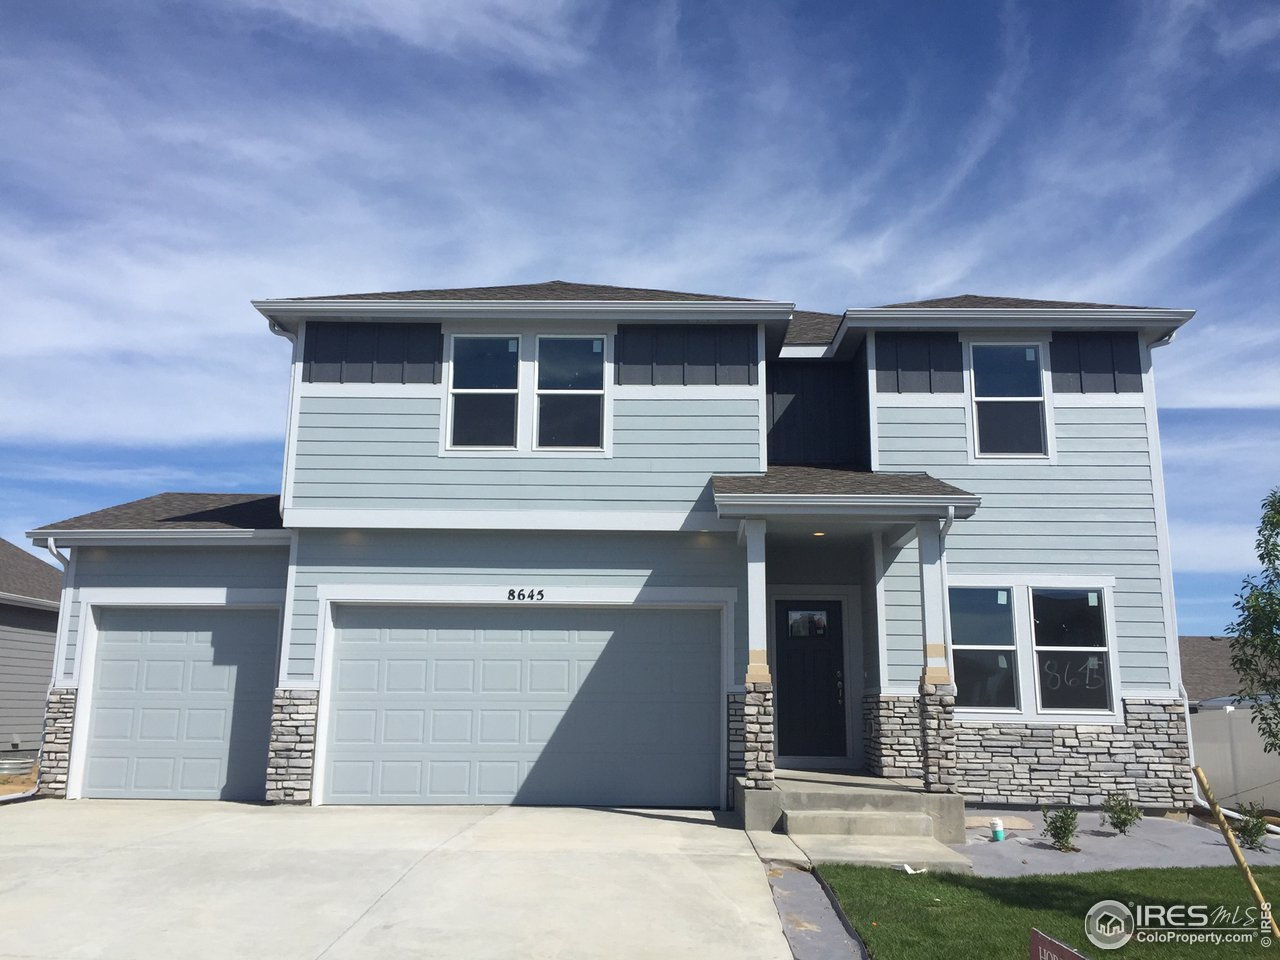 8645 16th St Rd, Greeley CO 80634